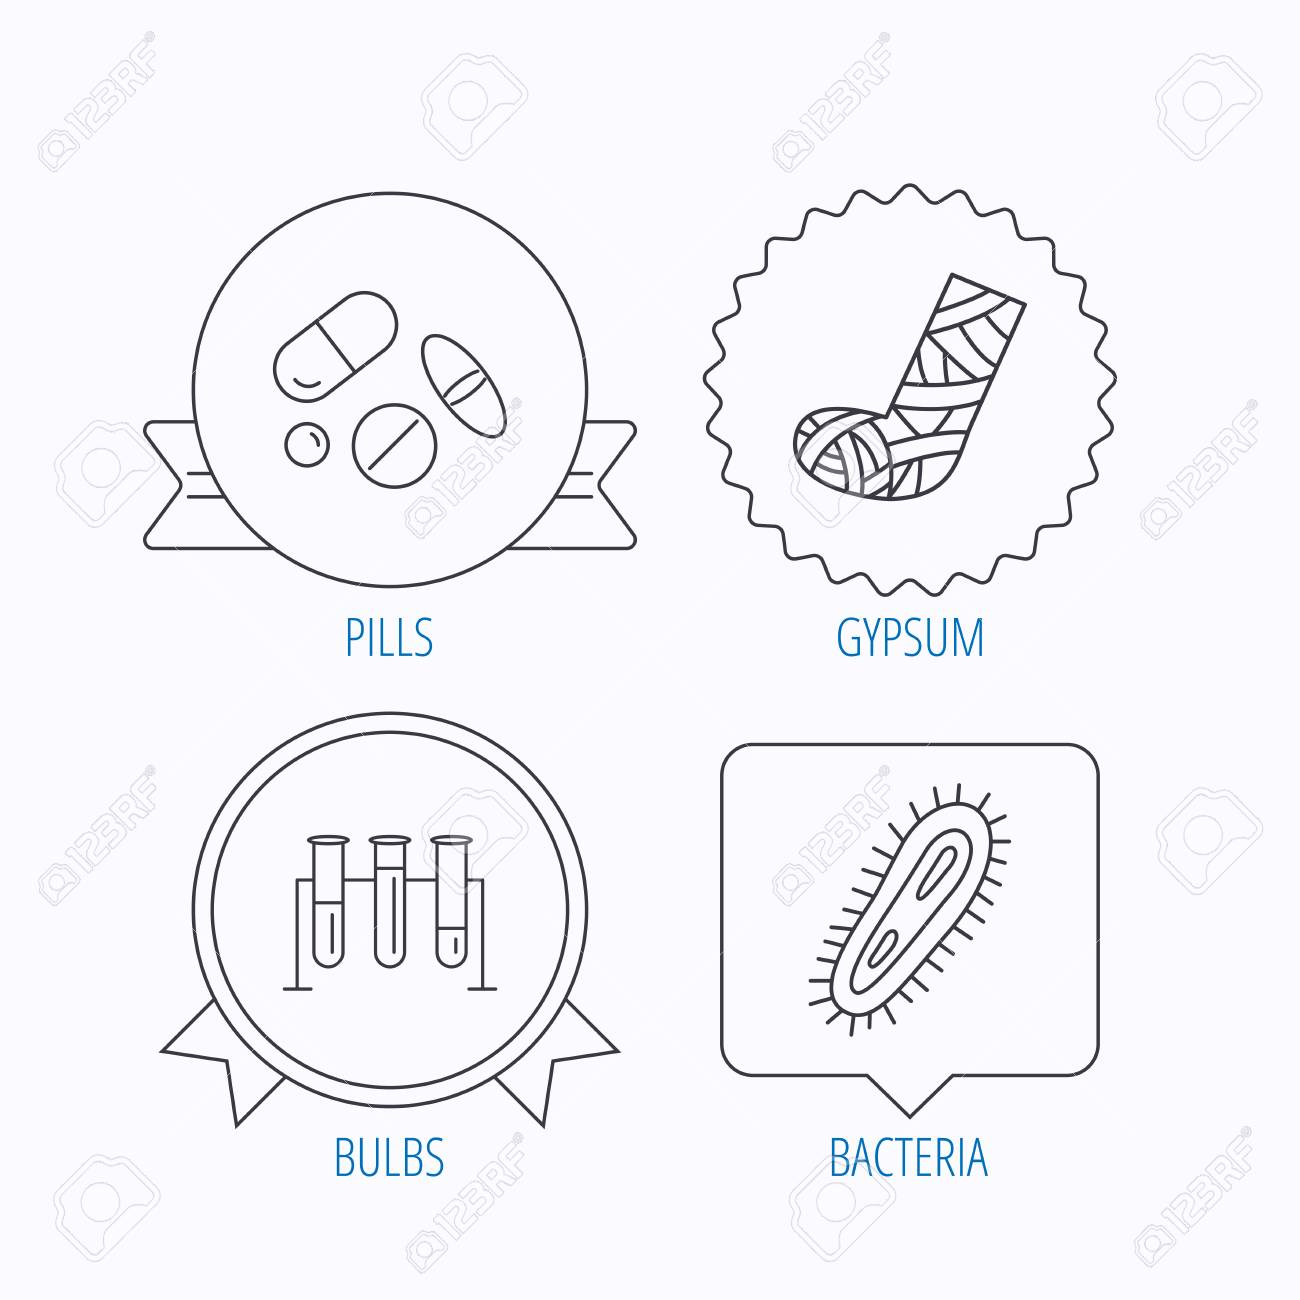 Broken foot bacteria and medical pills icons lab bulbs linear broken foot bacteria and medical pills icons lab bulbs linear sign award medal ccuart Image collections